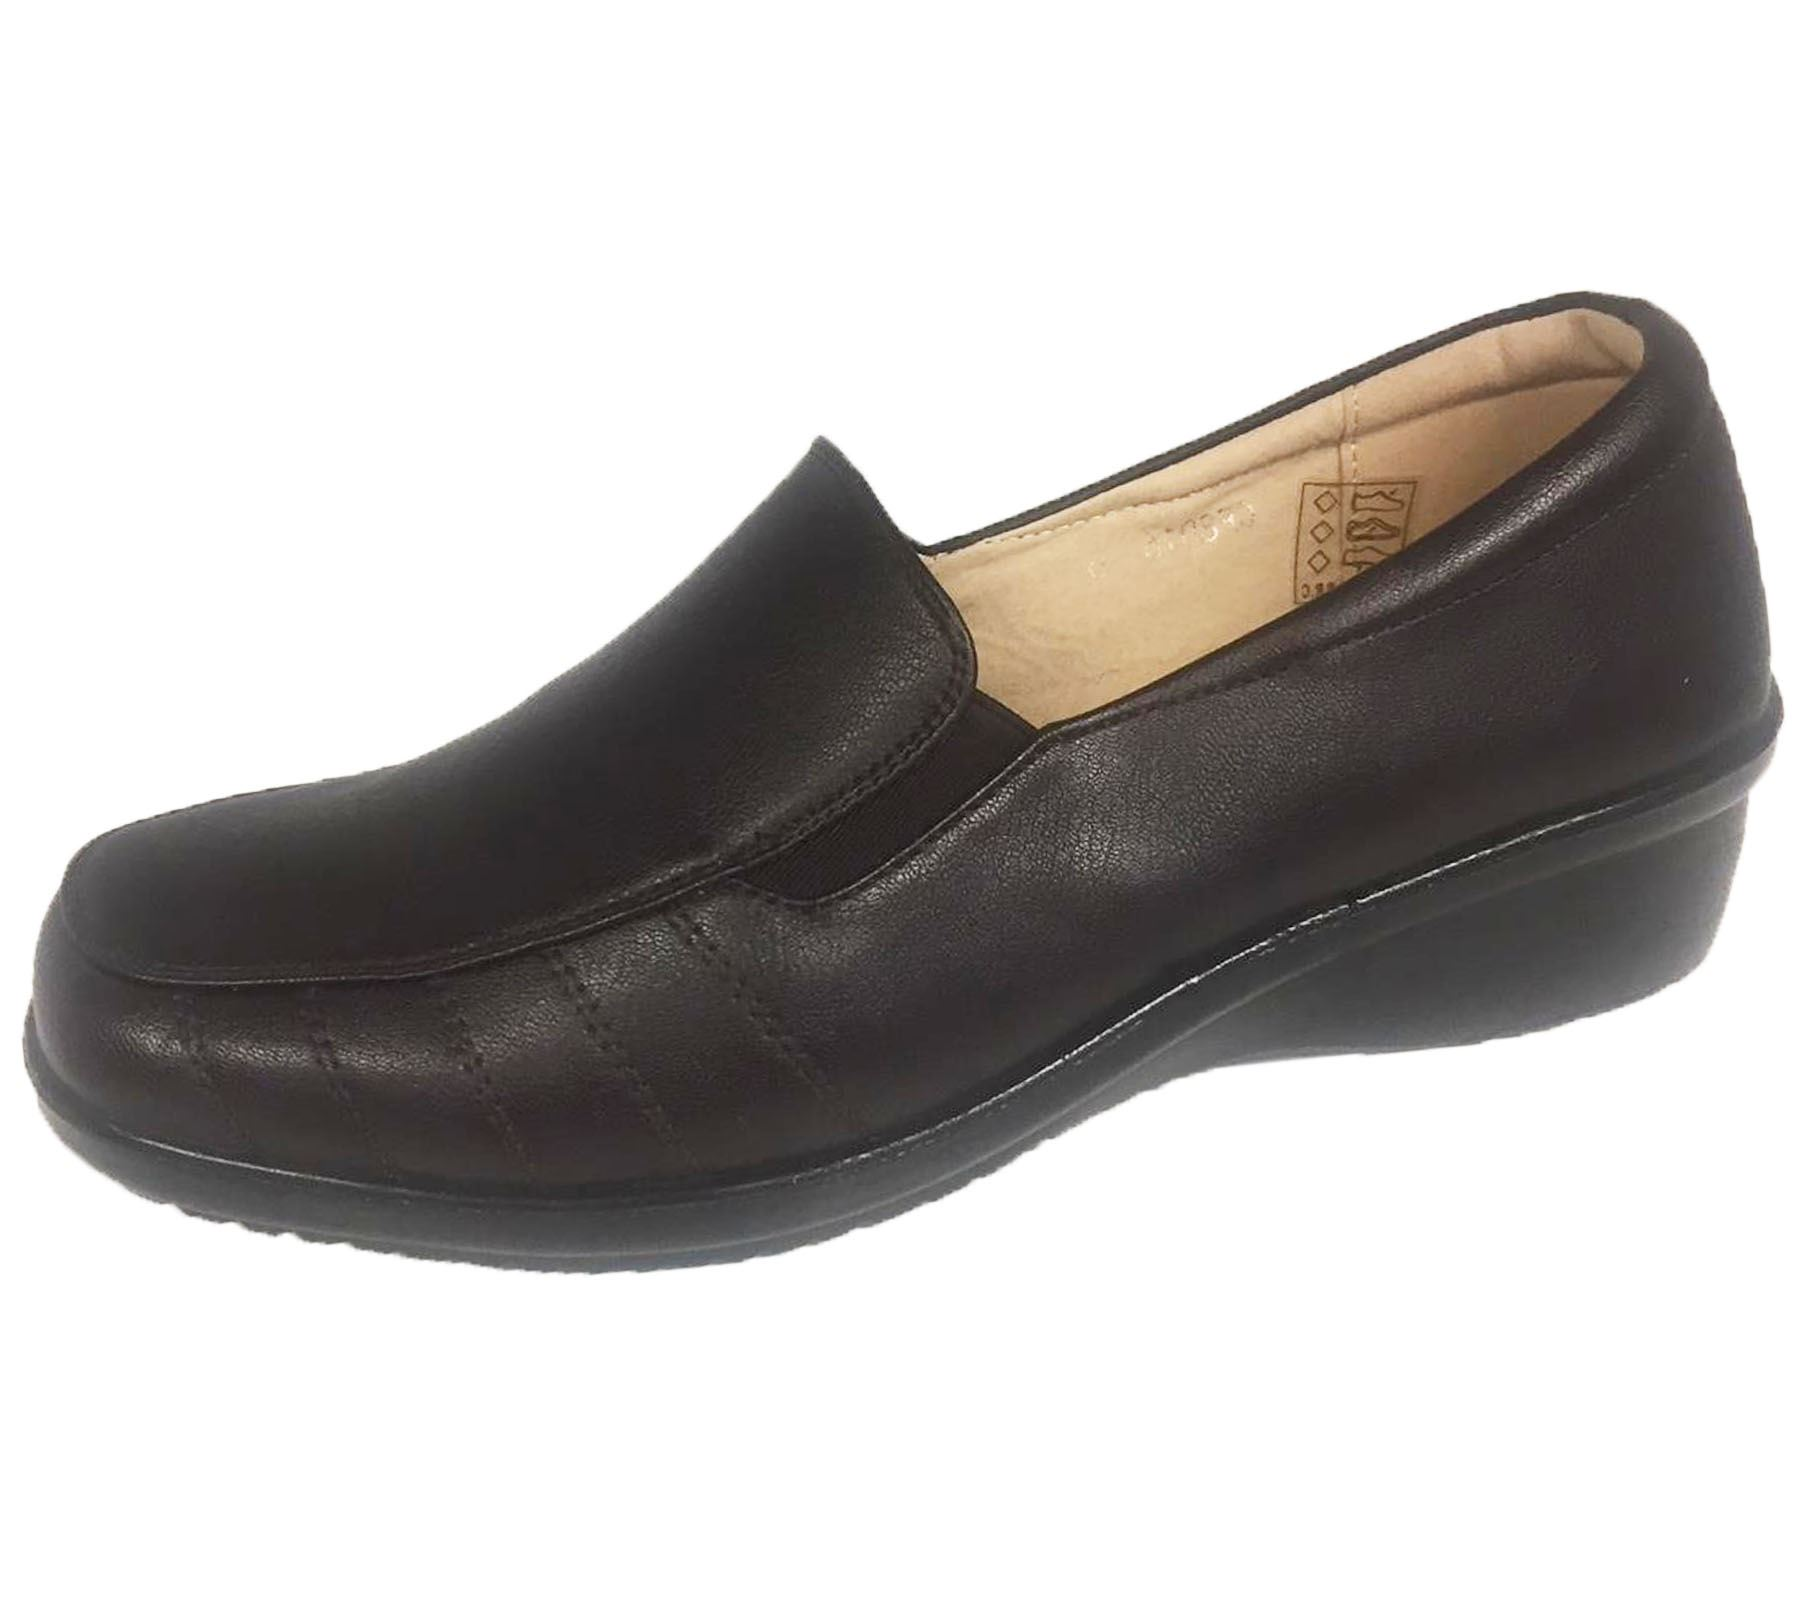 Ladies-Loafer-Moccasin-Womens-Casual-Comfort-Walk-Pumps-Slip-On-Shoes thumbnail 9